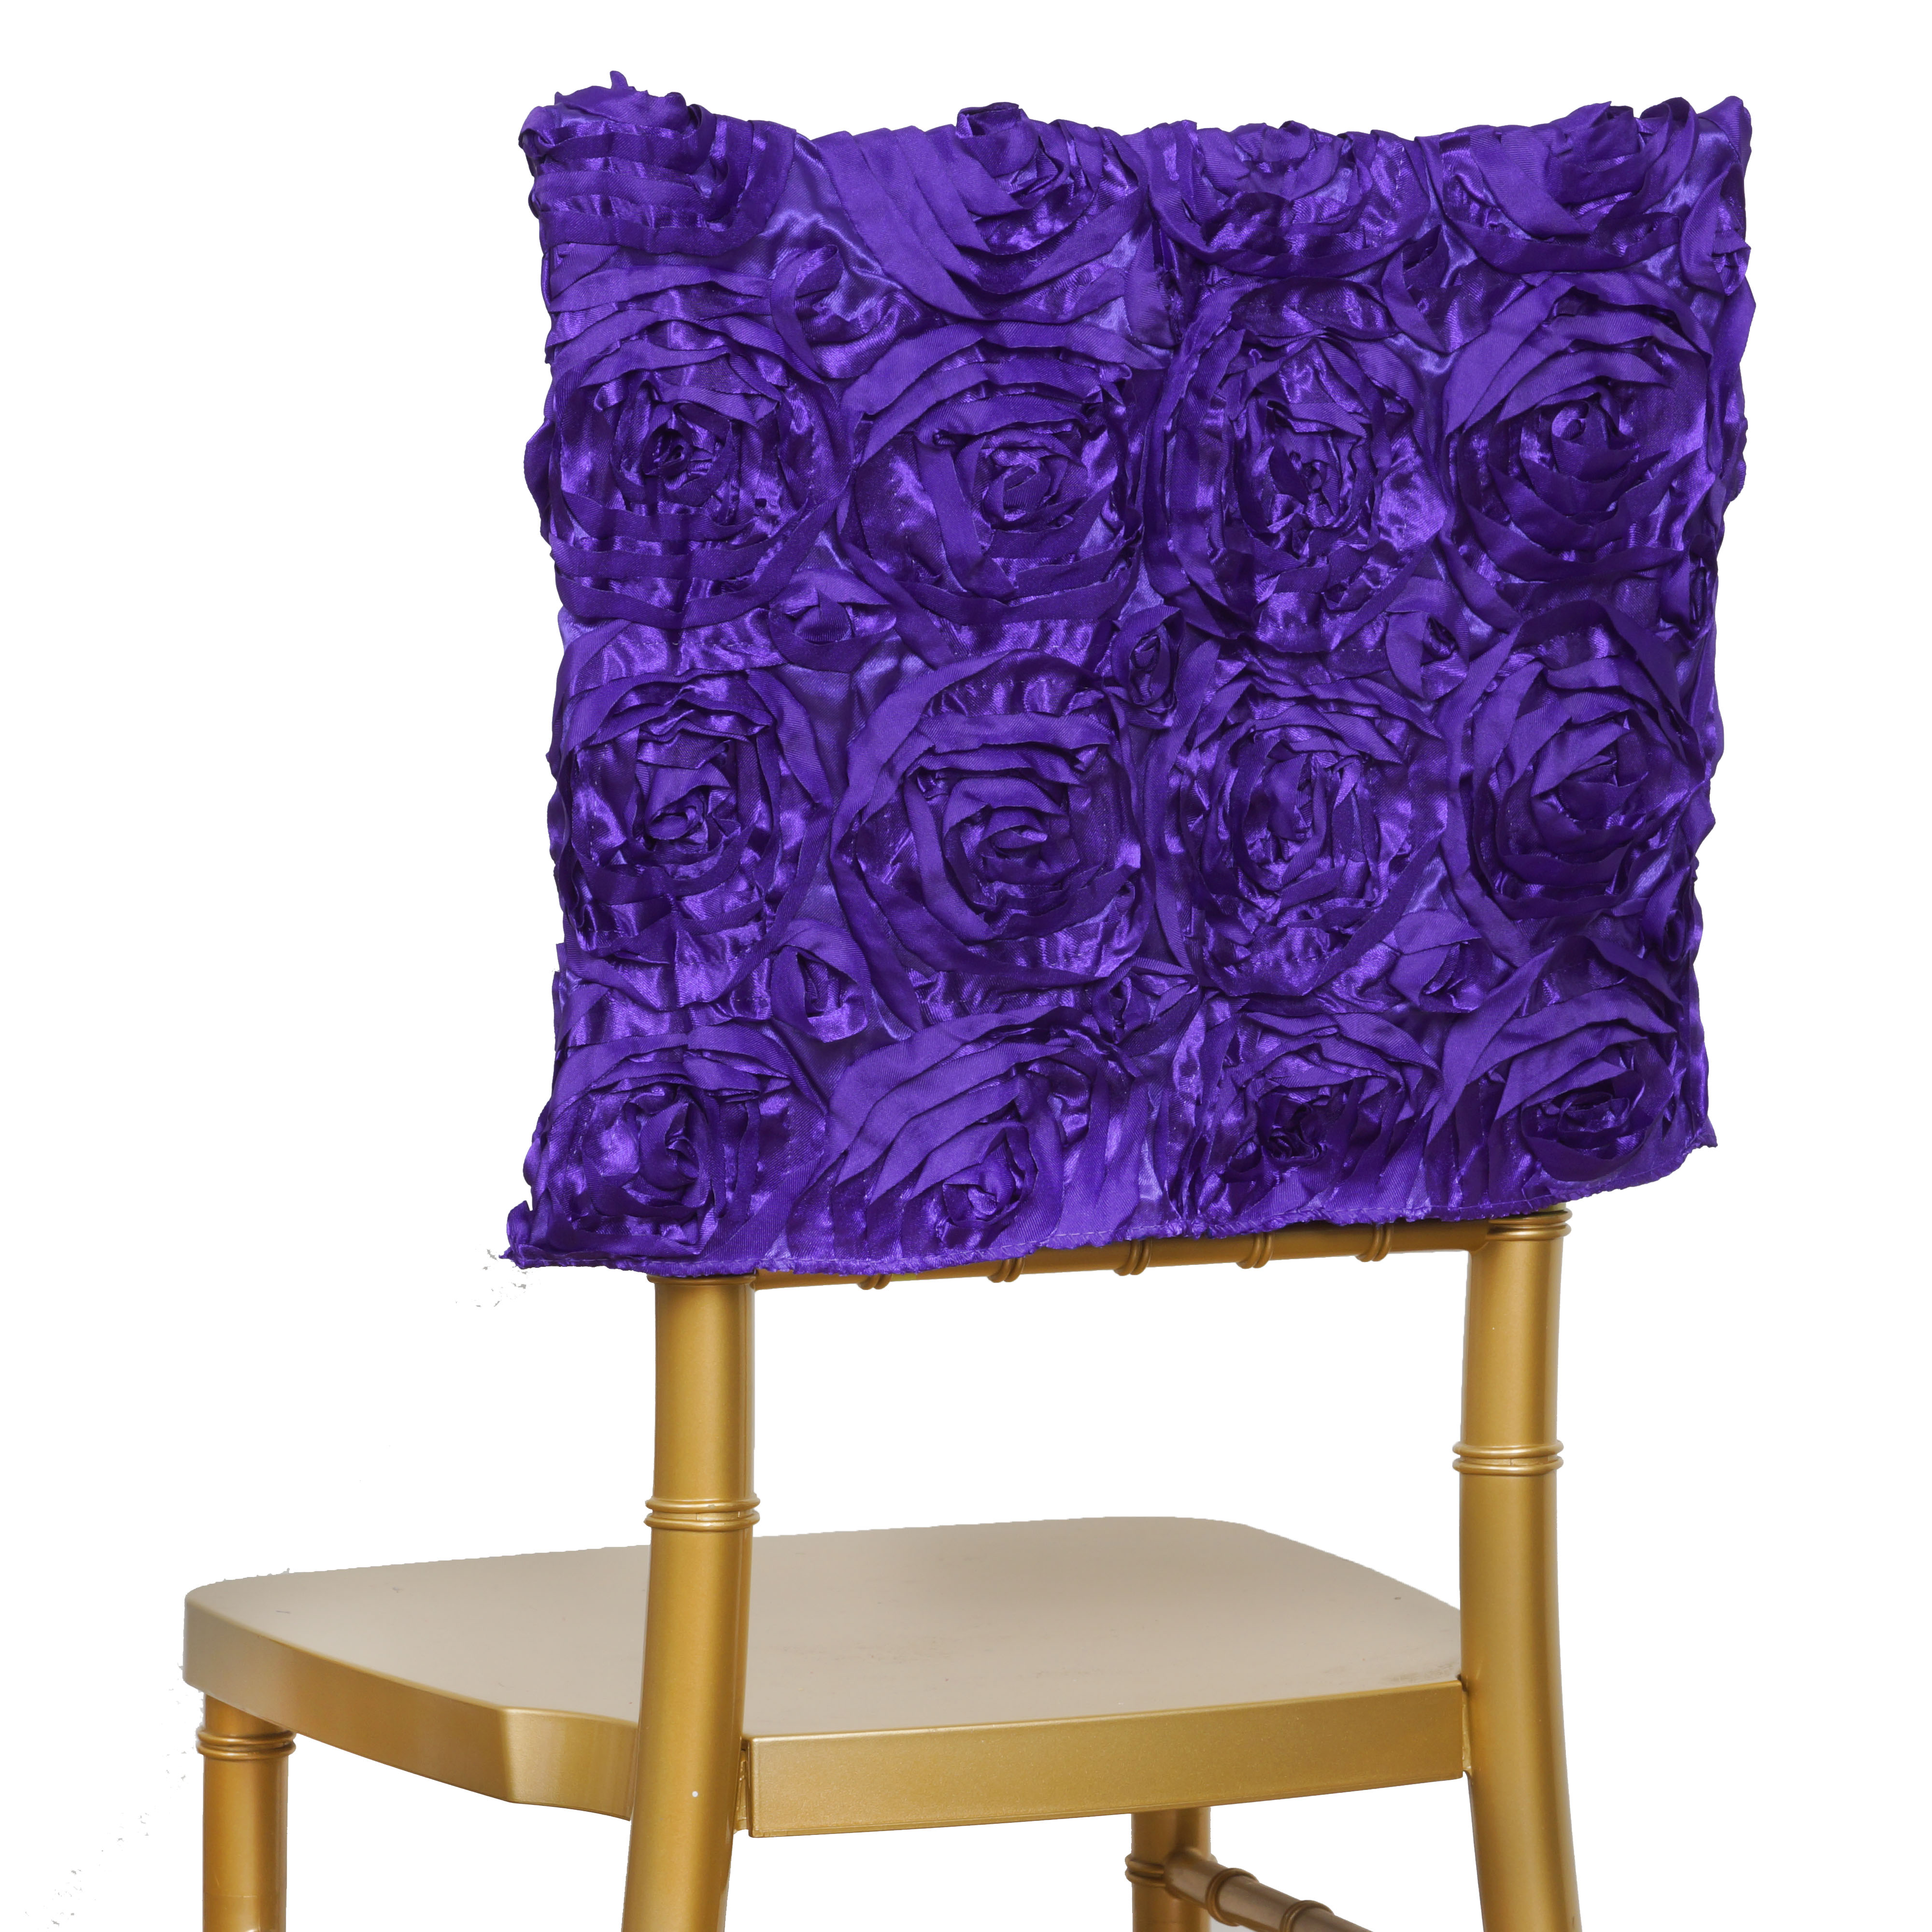 Raised-Roses-Square-Top-CHAIR-CAP-COVERS-Wedding-  sc 1 st  eBay & Raised Roses Square Top CHAIR CAP COVERS Wedding Reception Party ...